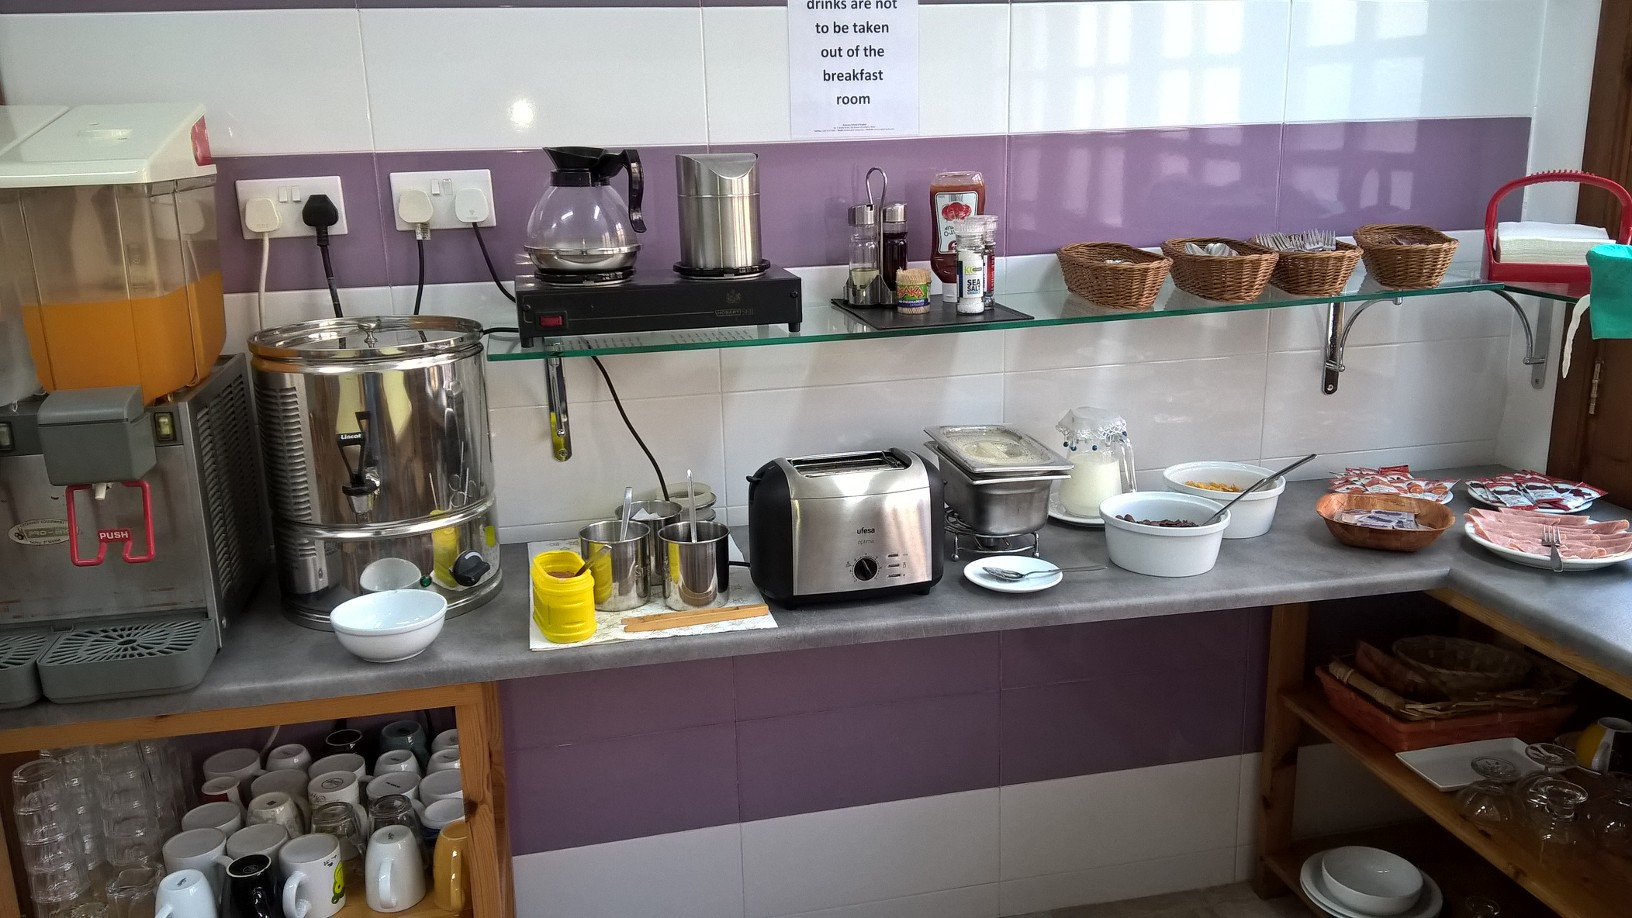 GSE Malta Adult Residence Breakfast room - choice for breakfast (2)